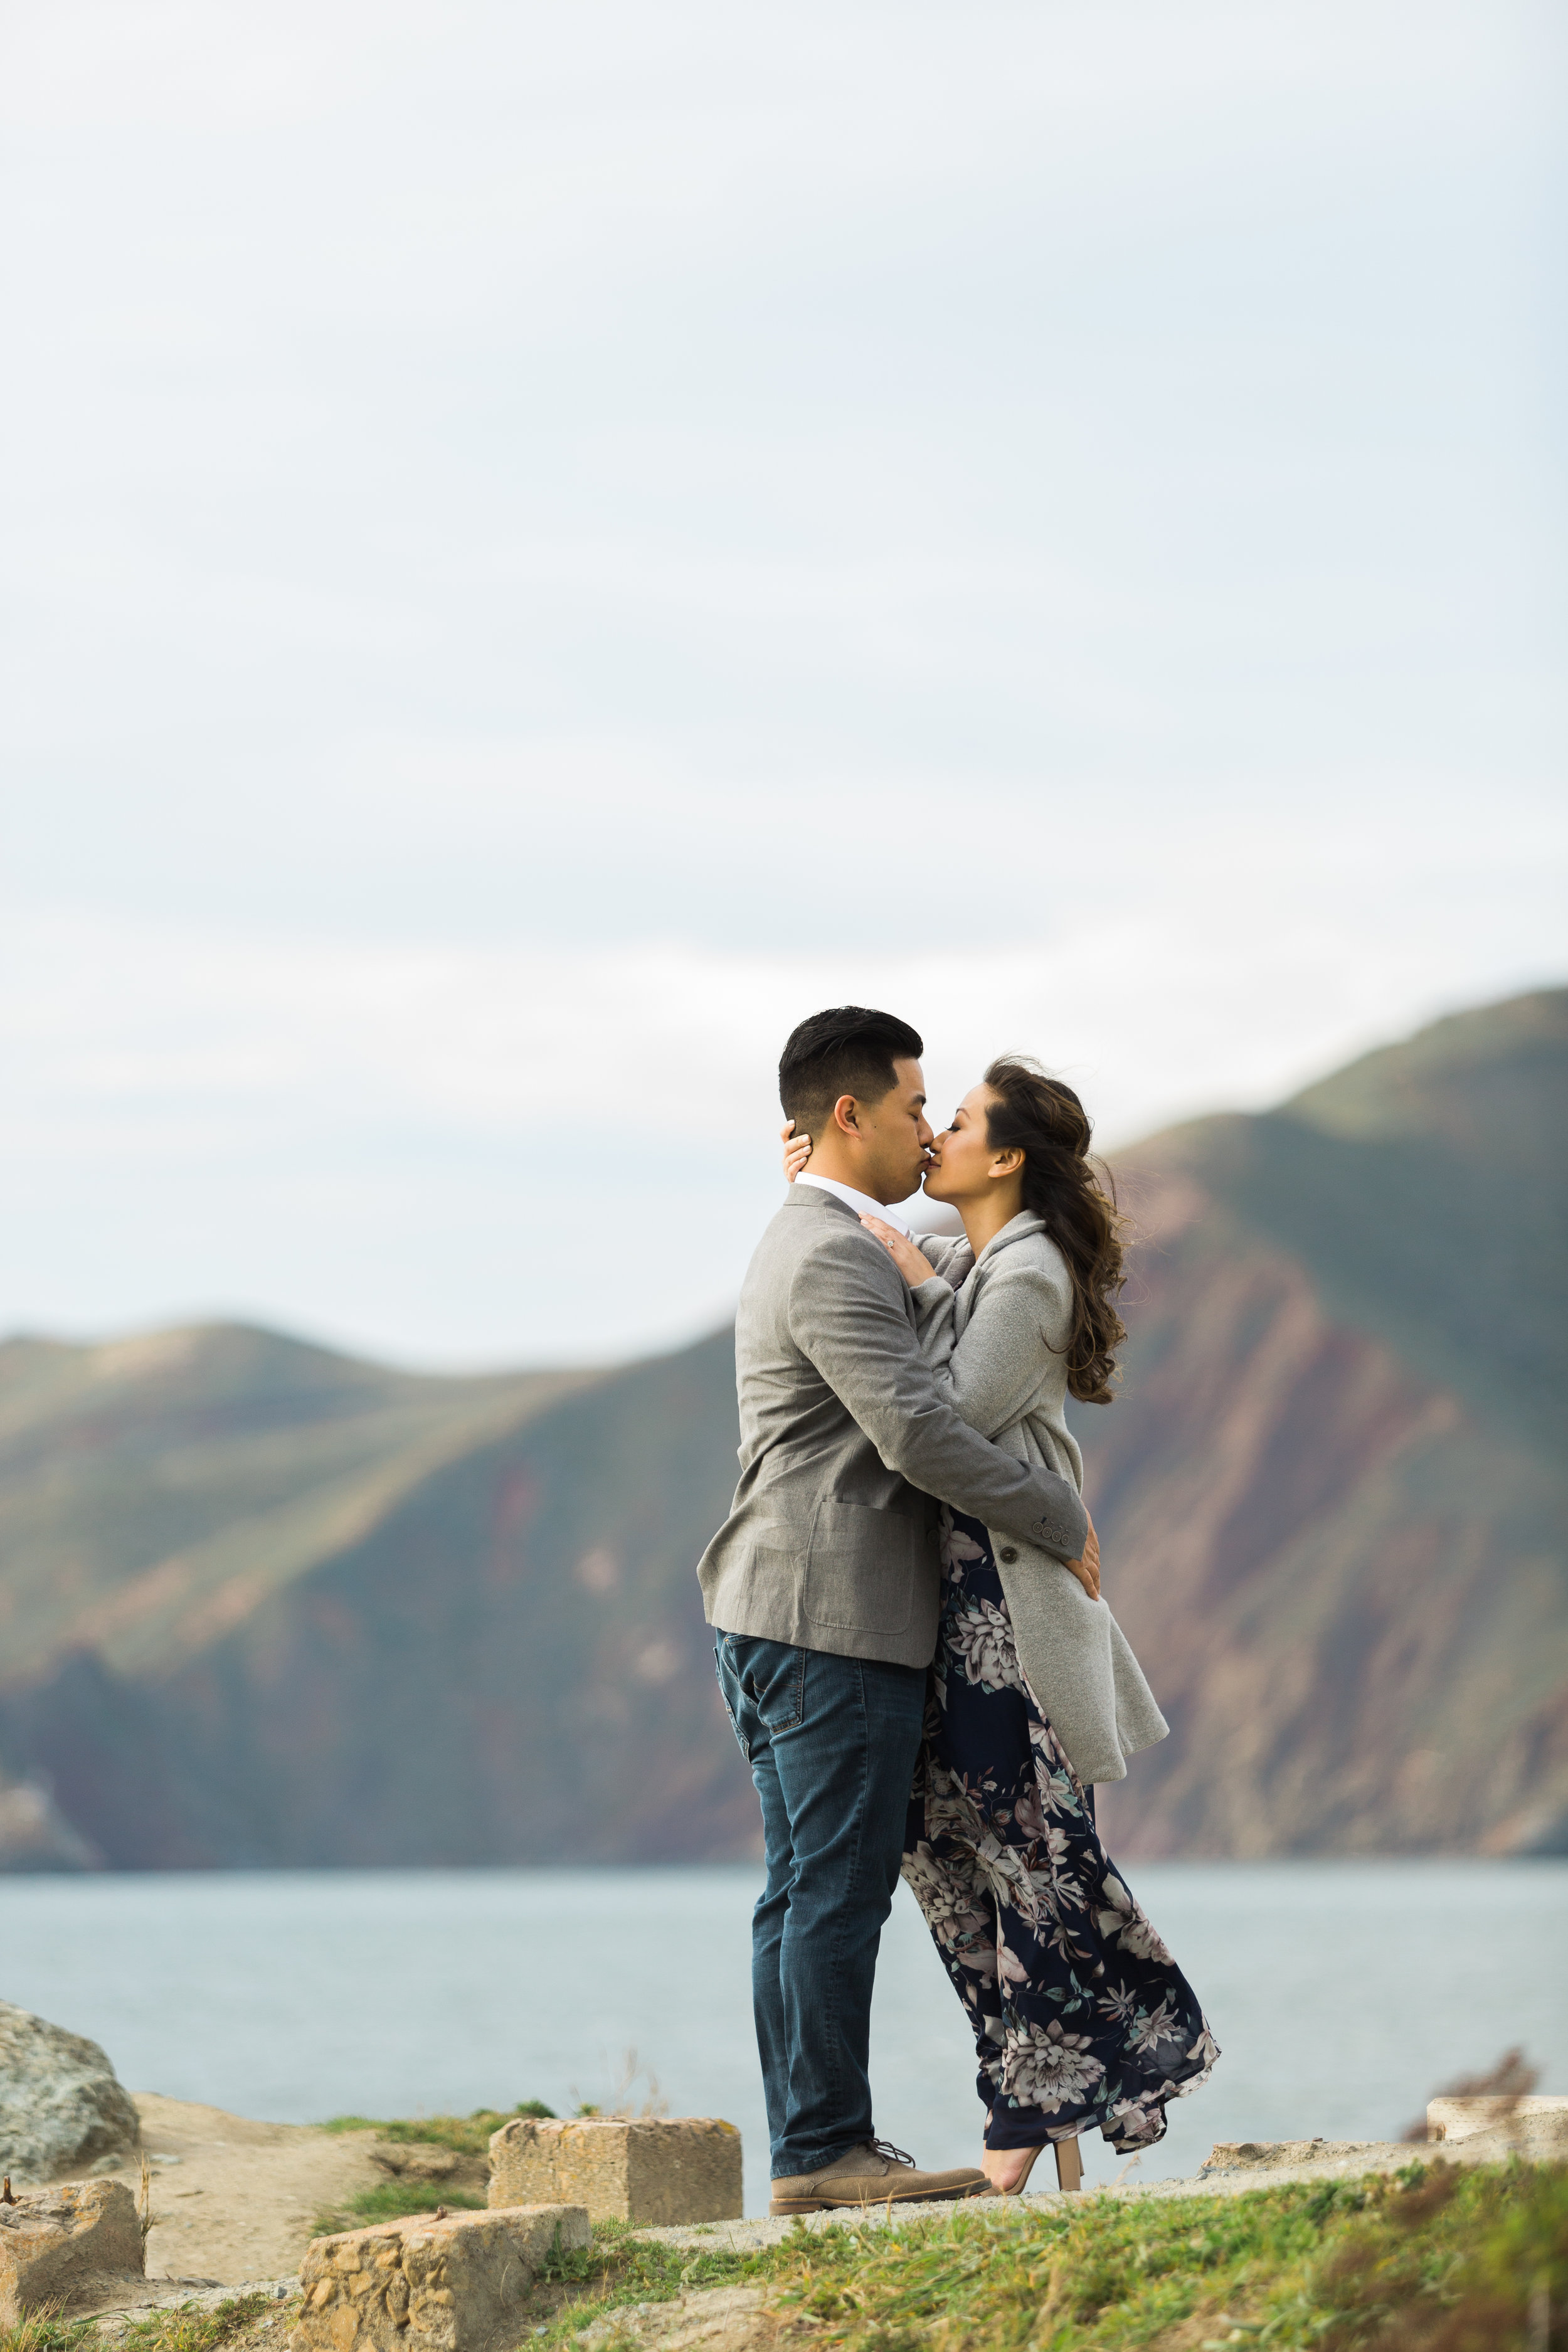 San-Francisco-Engagement-Session-Tara-Nichole-Photo-19.jpg